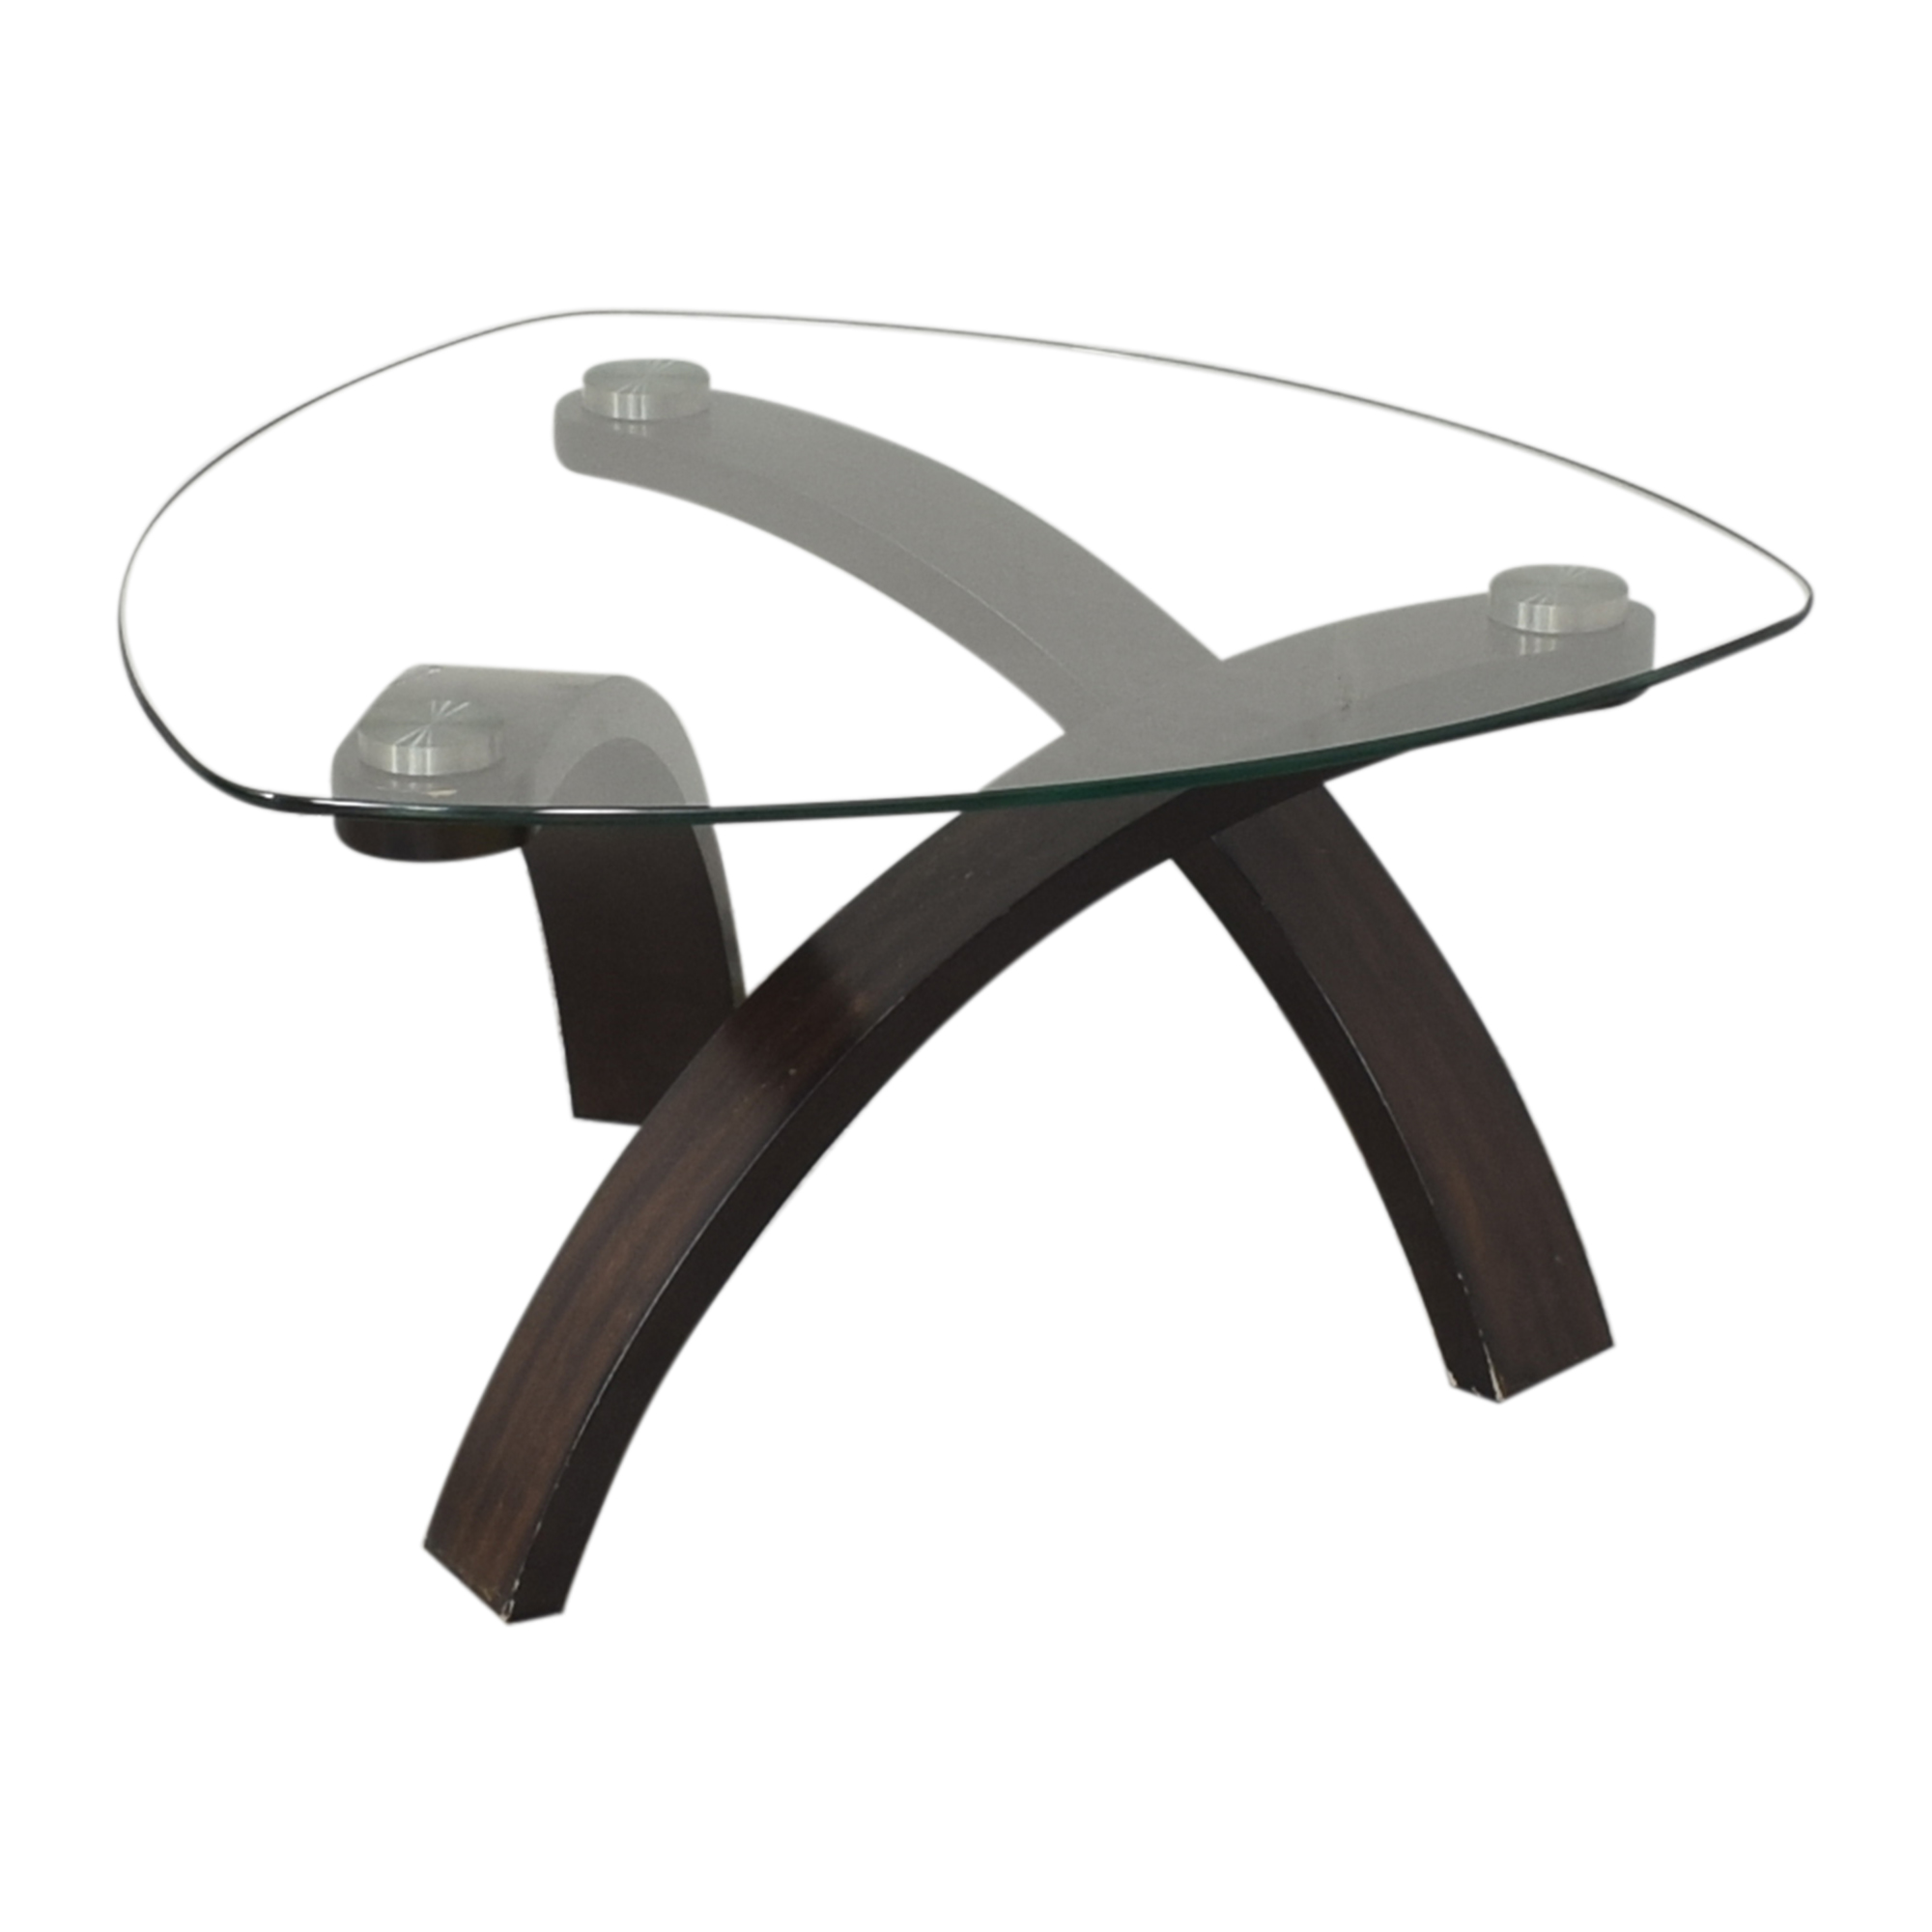 Raymour & Flanigan Raymour & Flanigan Allure Round Coffee Table nyc